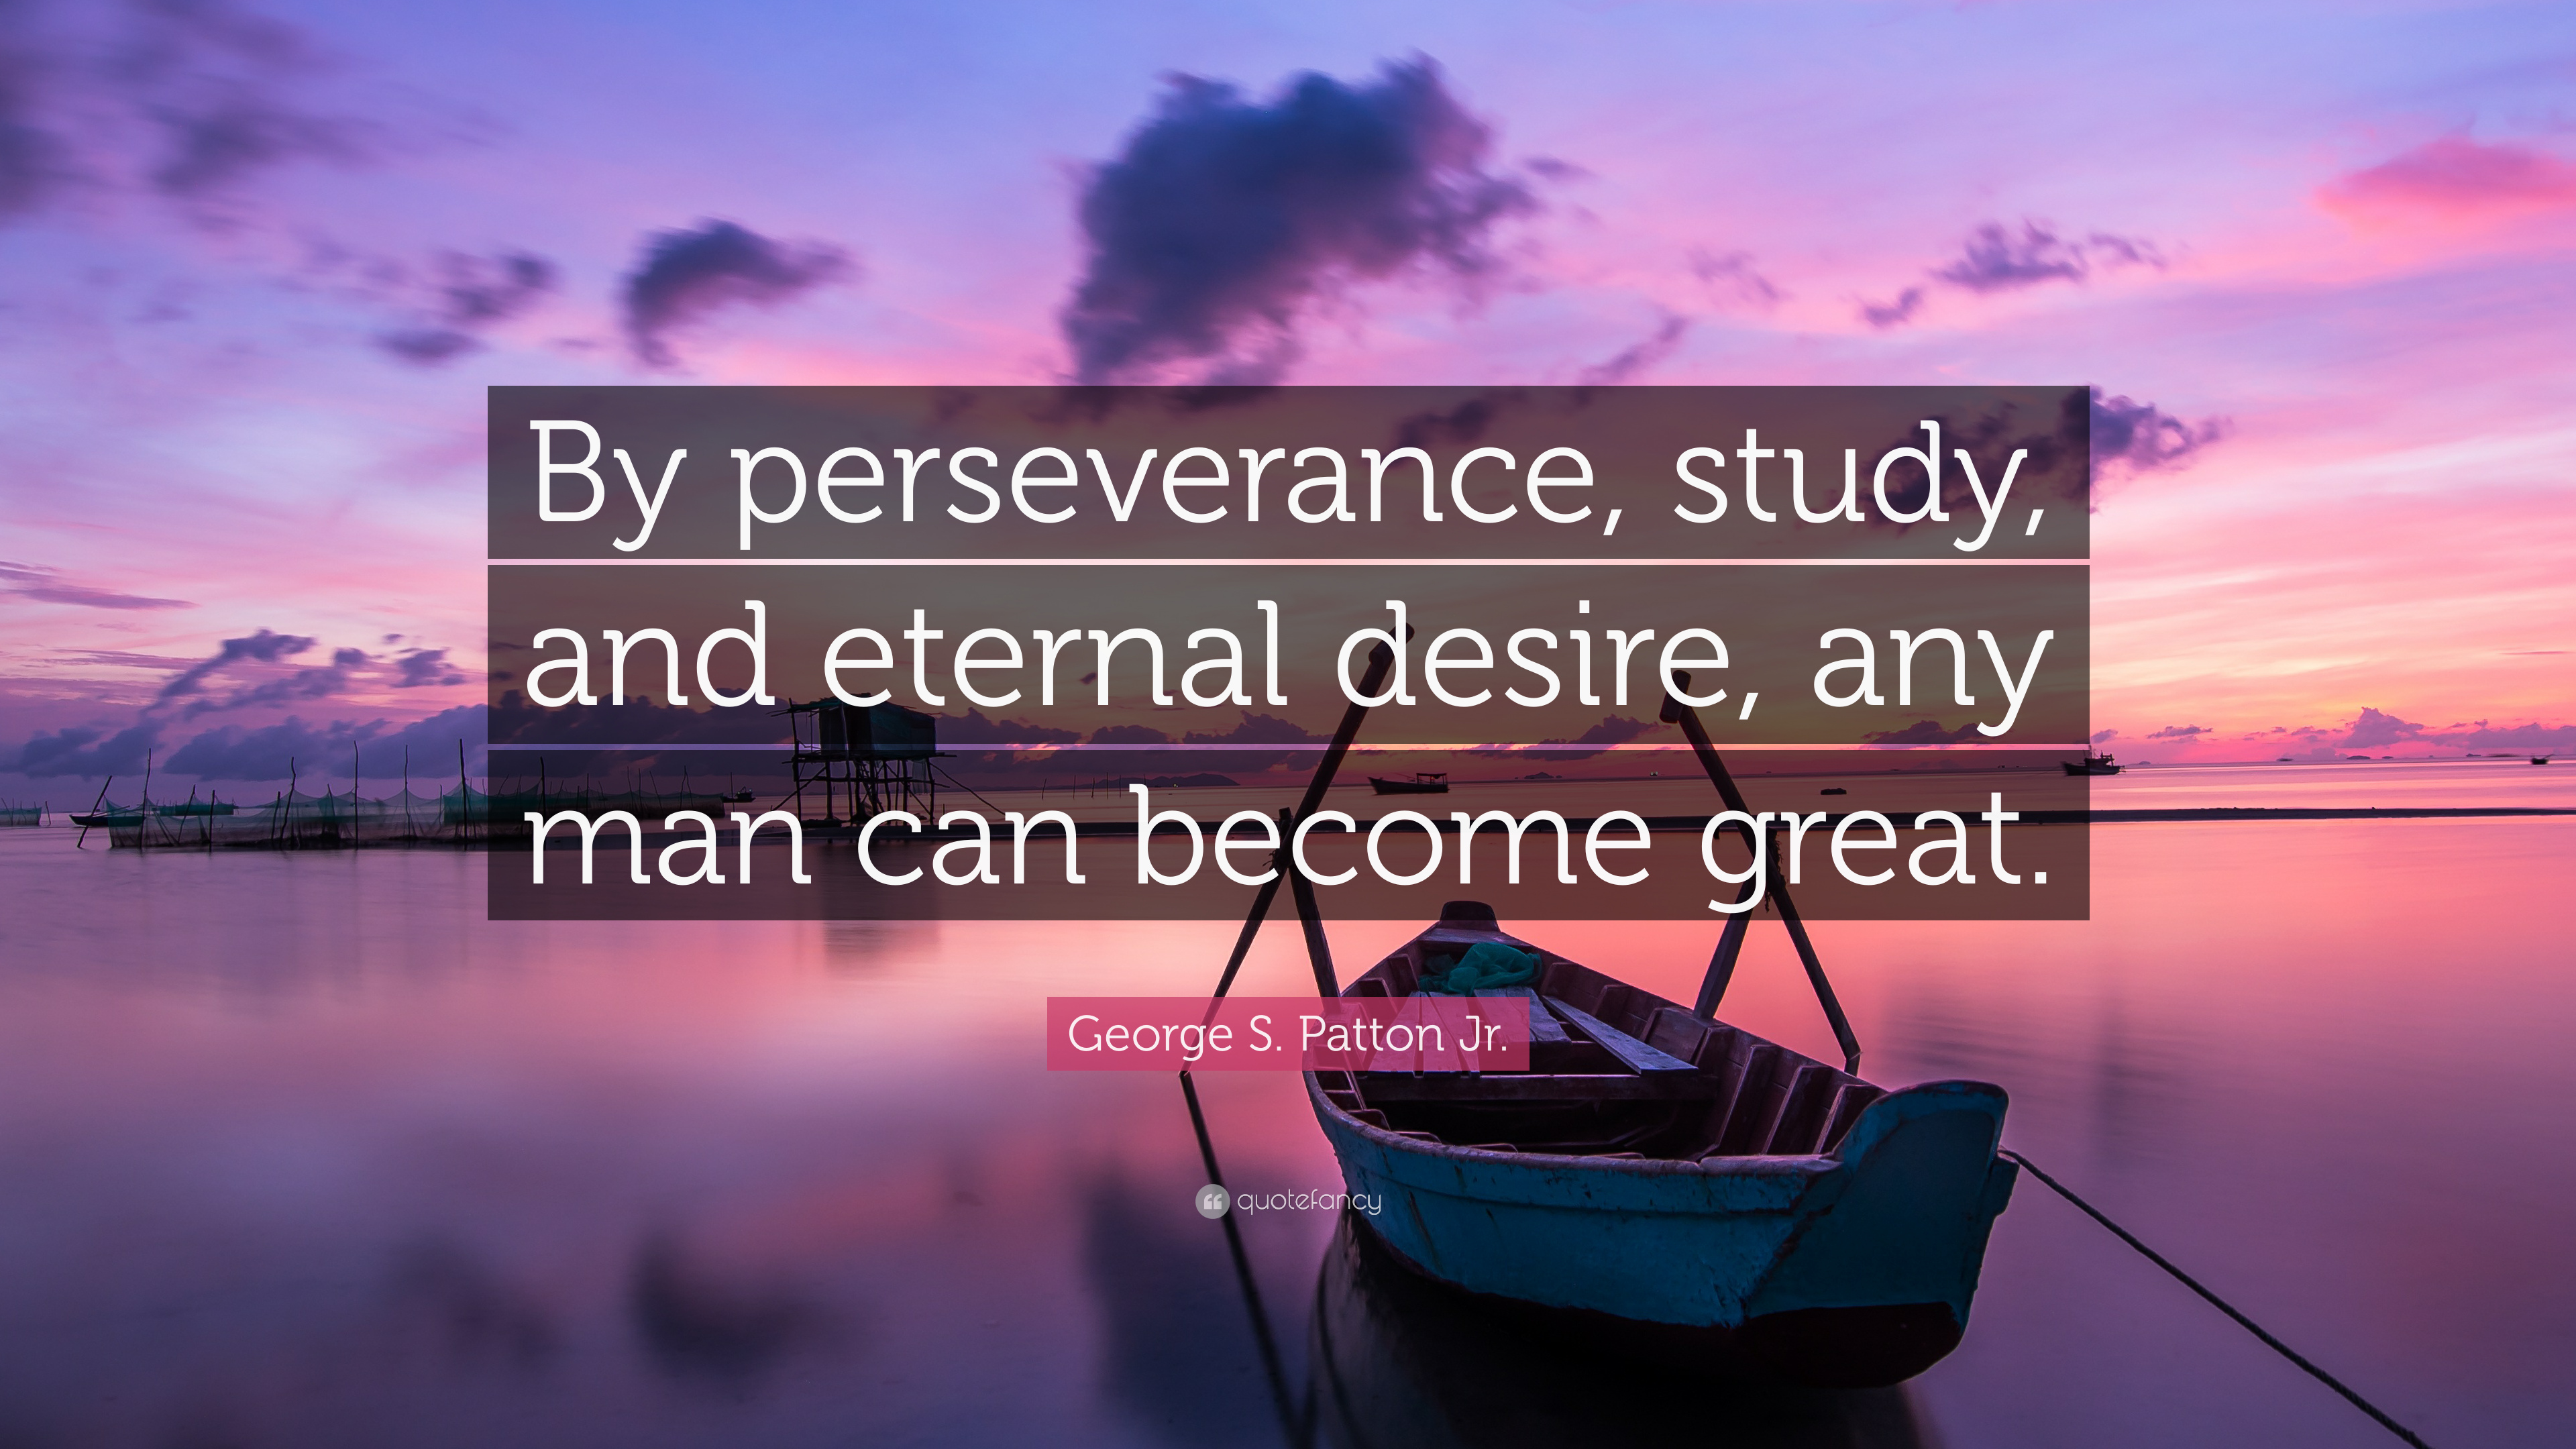 Motivational Quotes To Study Wallpaper George S Patton Jr Quote By Perseverance Study And